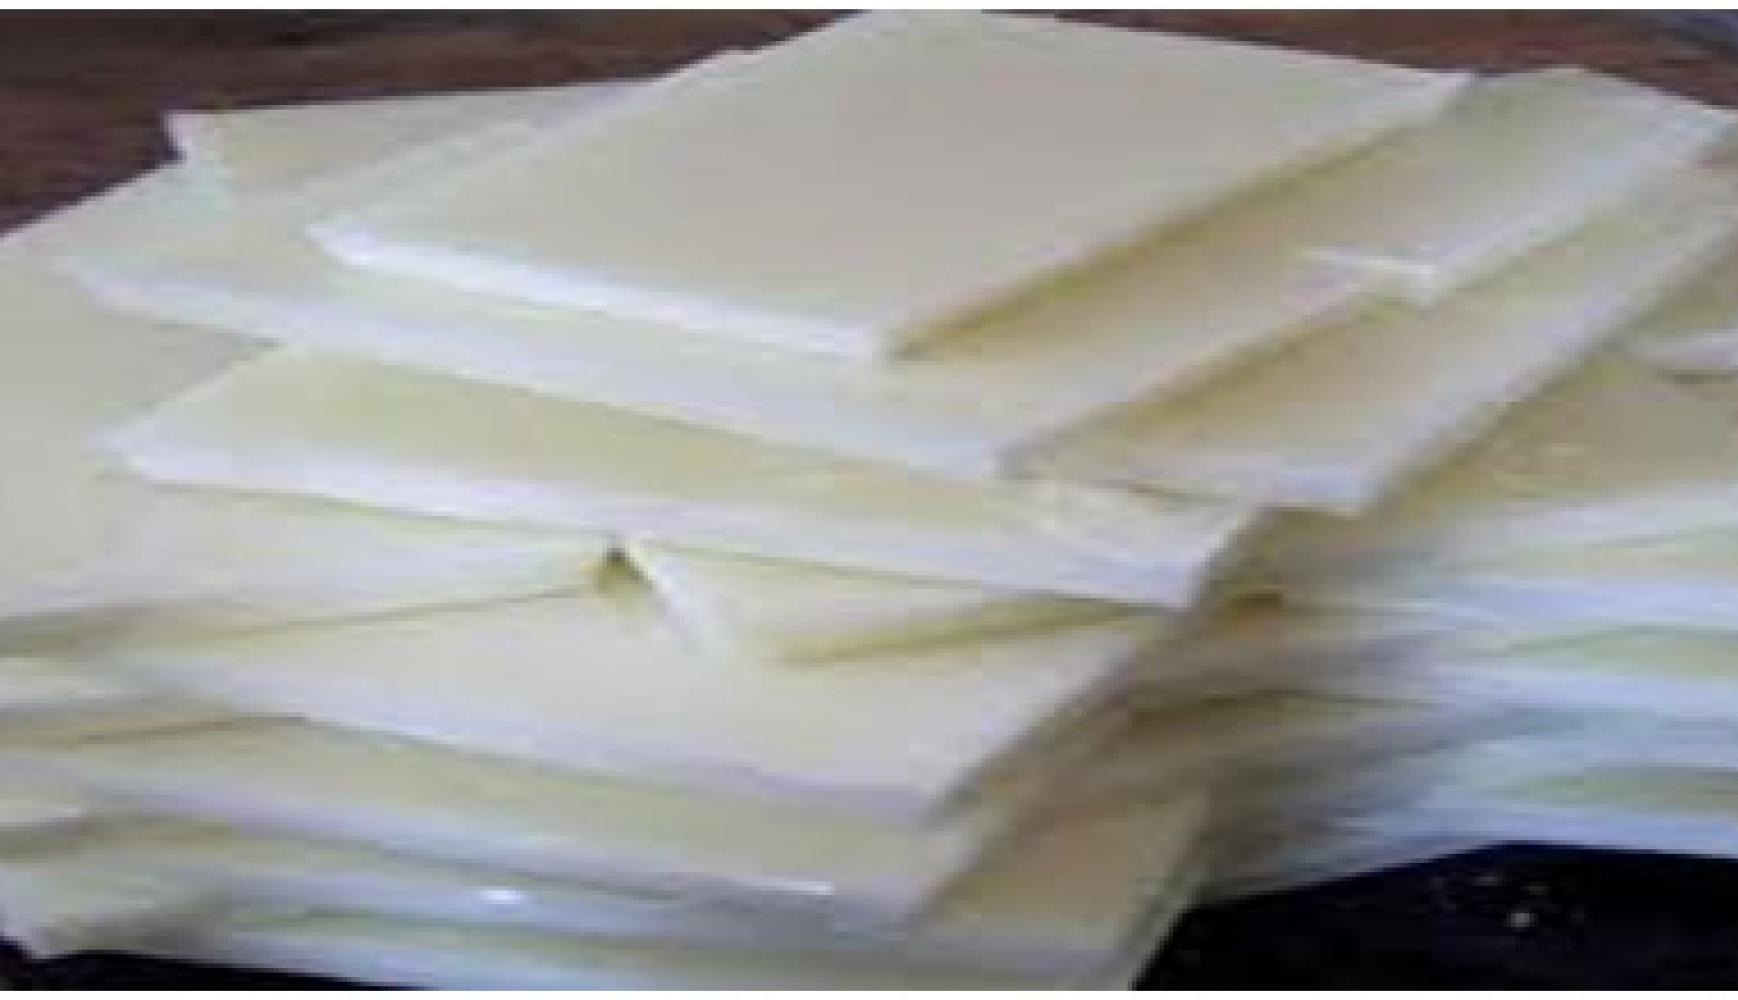 Chlorinated Paraffin Wax Supplier in Dubai, UAE, Middle East